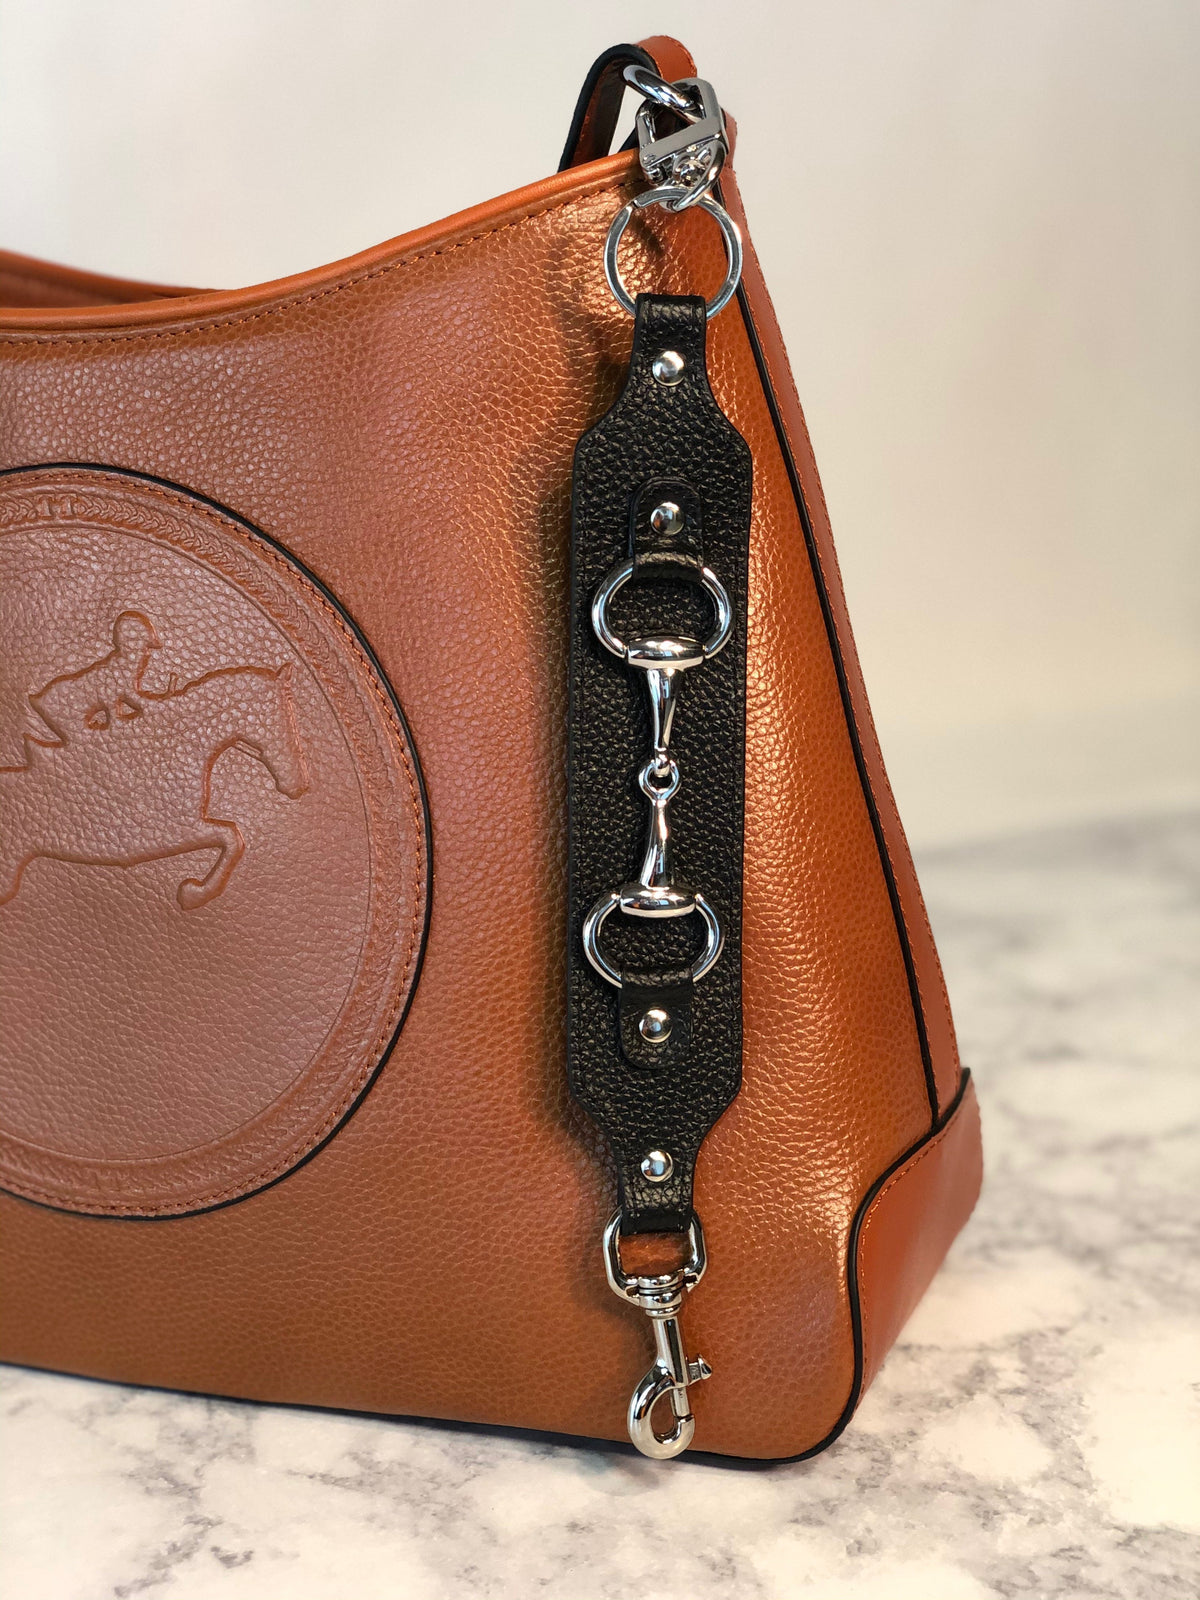 Tucker Tweed Equestrian Leather Handbags Bit Tucker Tweed Equestrian Keychains